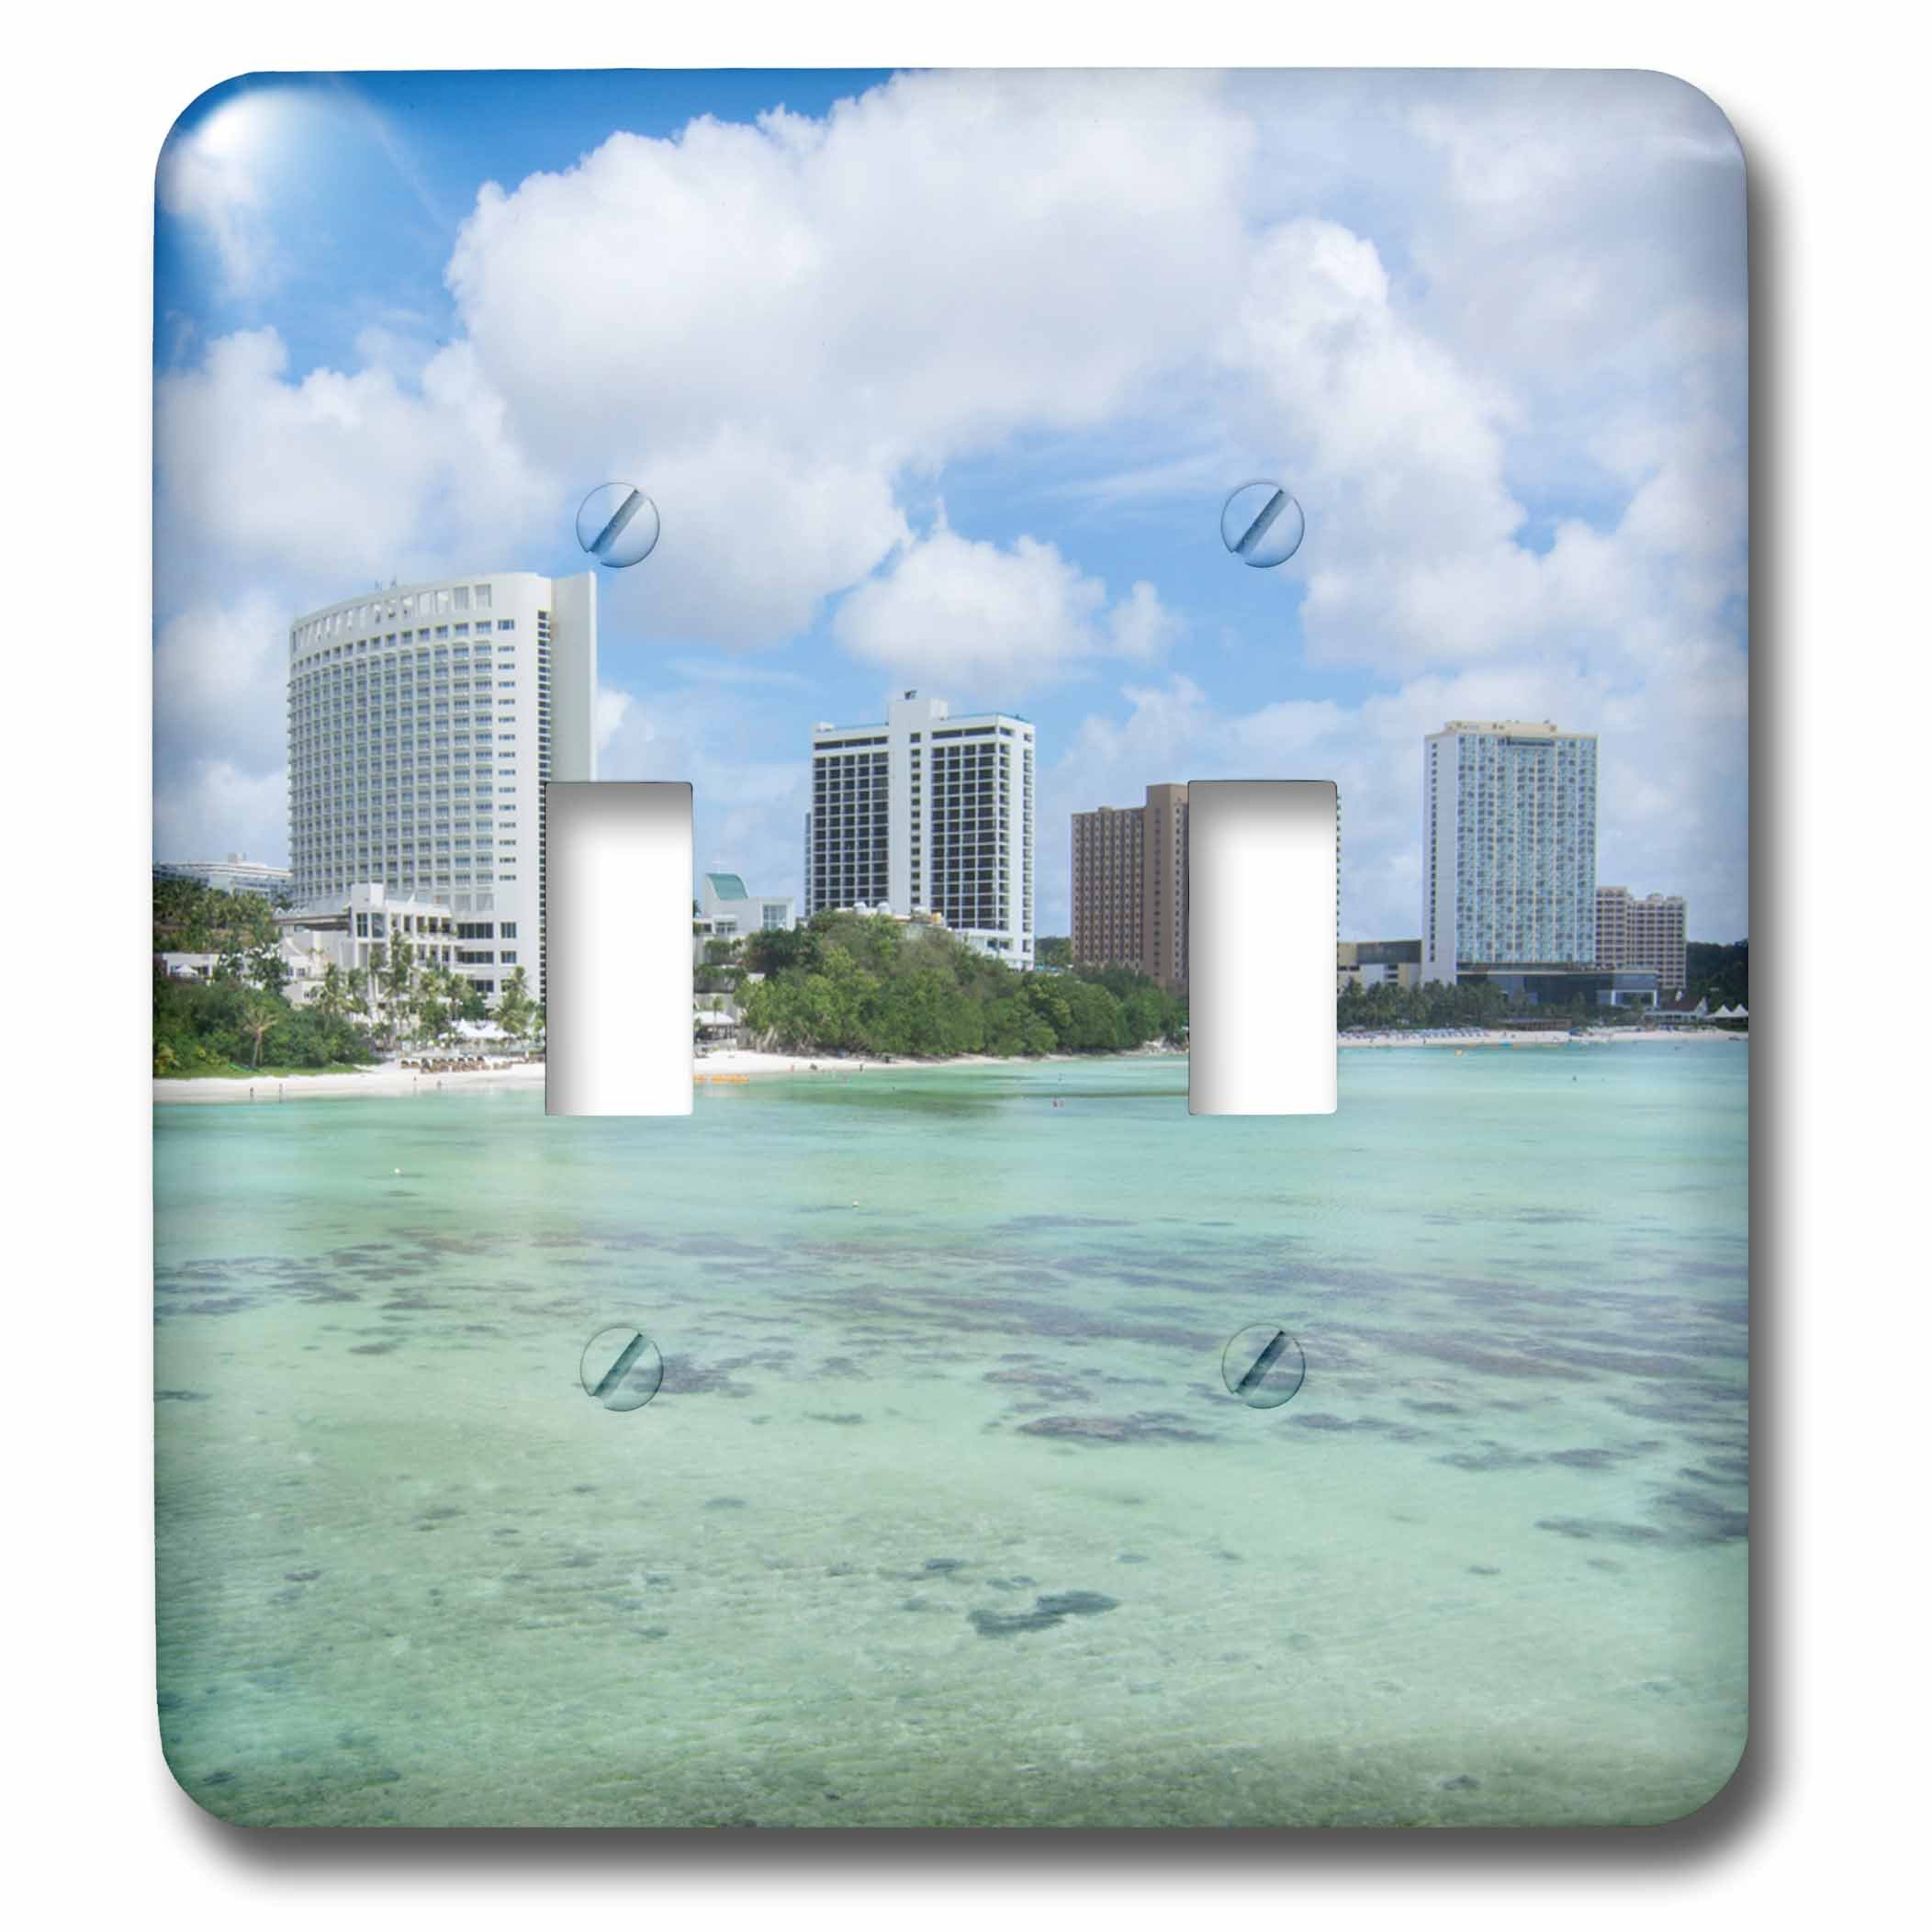 3dRose Danita Delimont - Cities - Guam Territory. Hotels line beach with clear tropical waters. - Light Switch Covers - double toggle switch (lsp_278126_2)